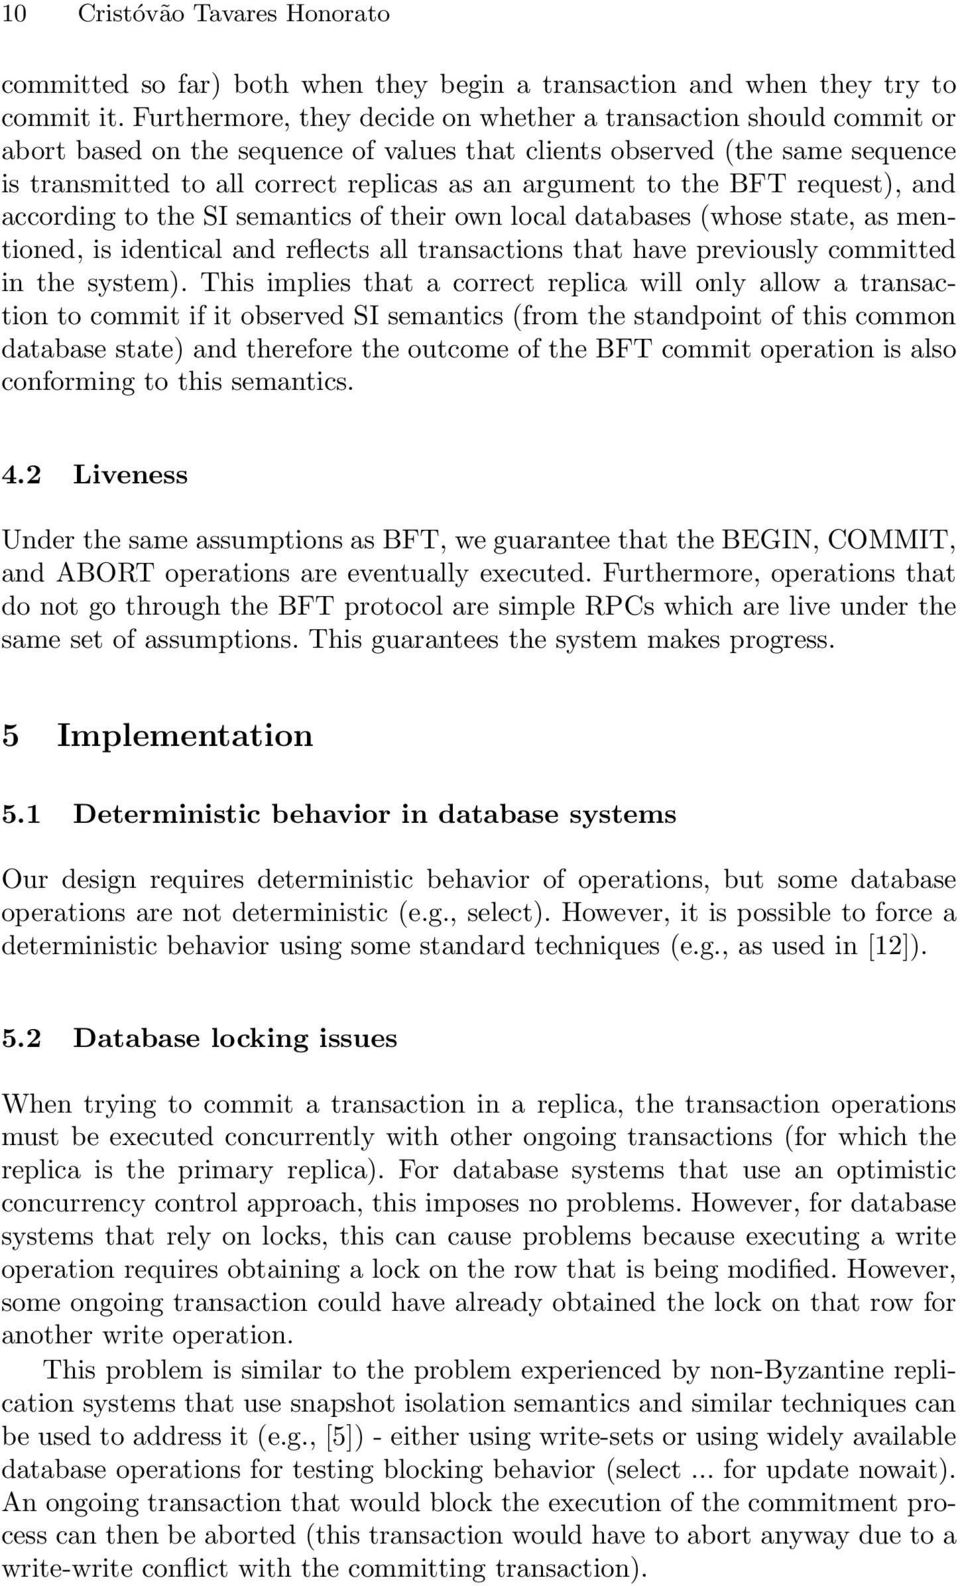 to the BFT request), and according to the SI semantics of their own local databases (whose state, as mentioned, is identical and reflects all transactions that have previously committed in the